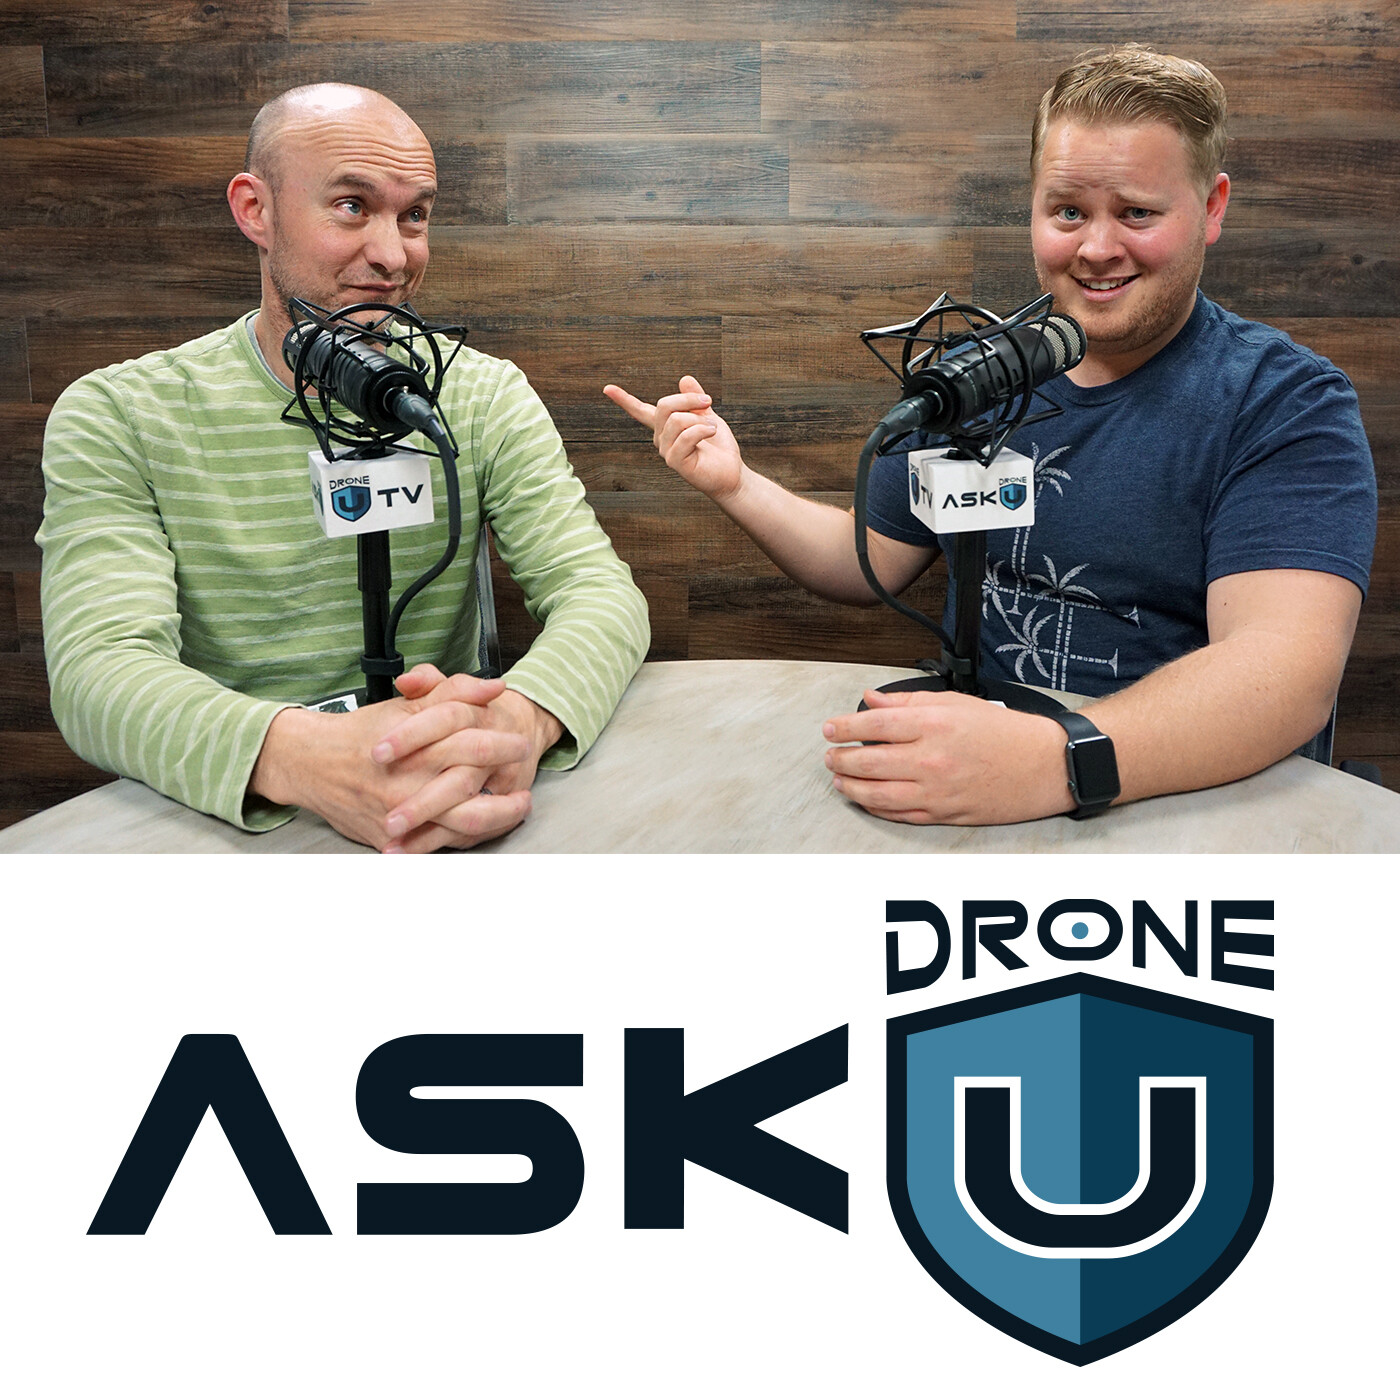 ADU 0201: Interview with David Boggs and Daniel Herbert - What are the facts surrounding the recent Drone Slayer case...